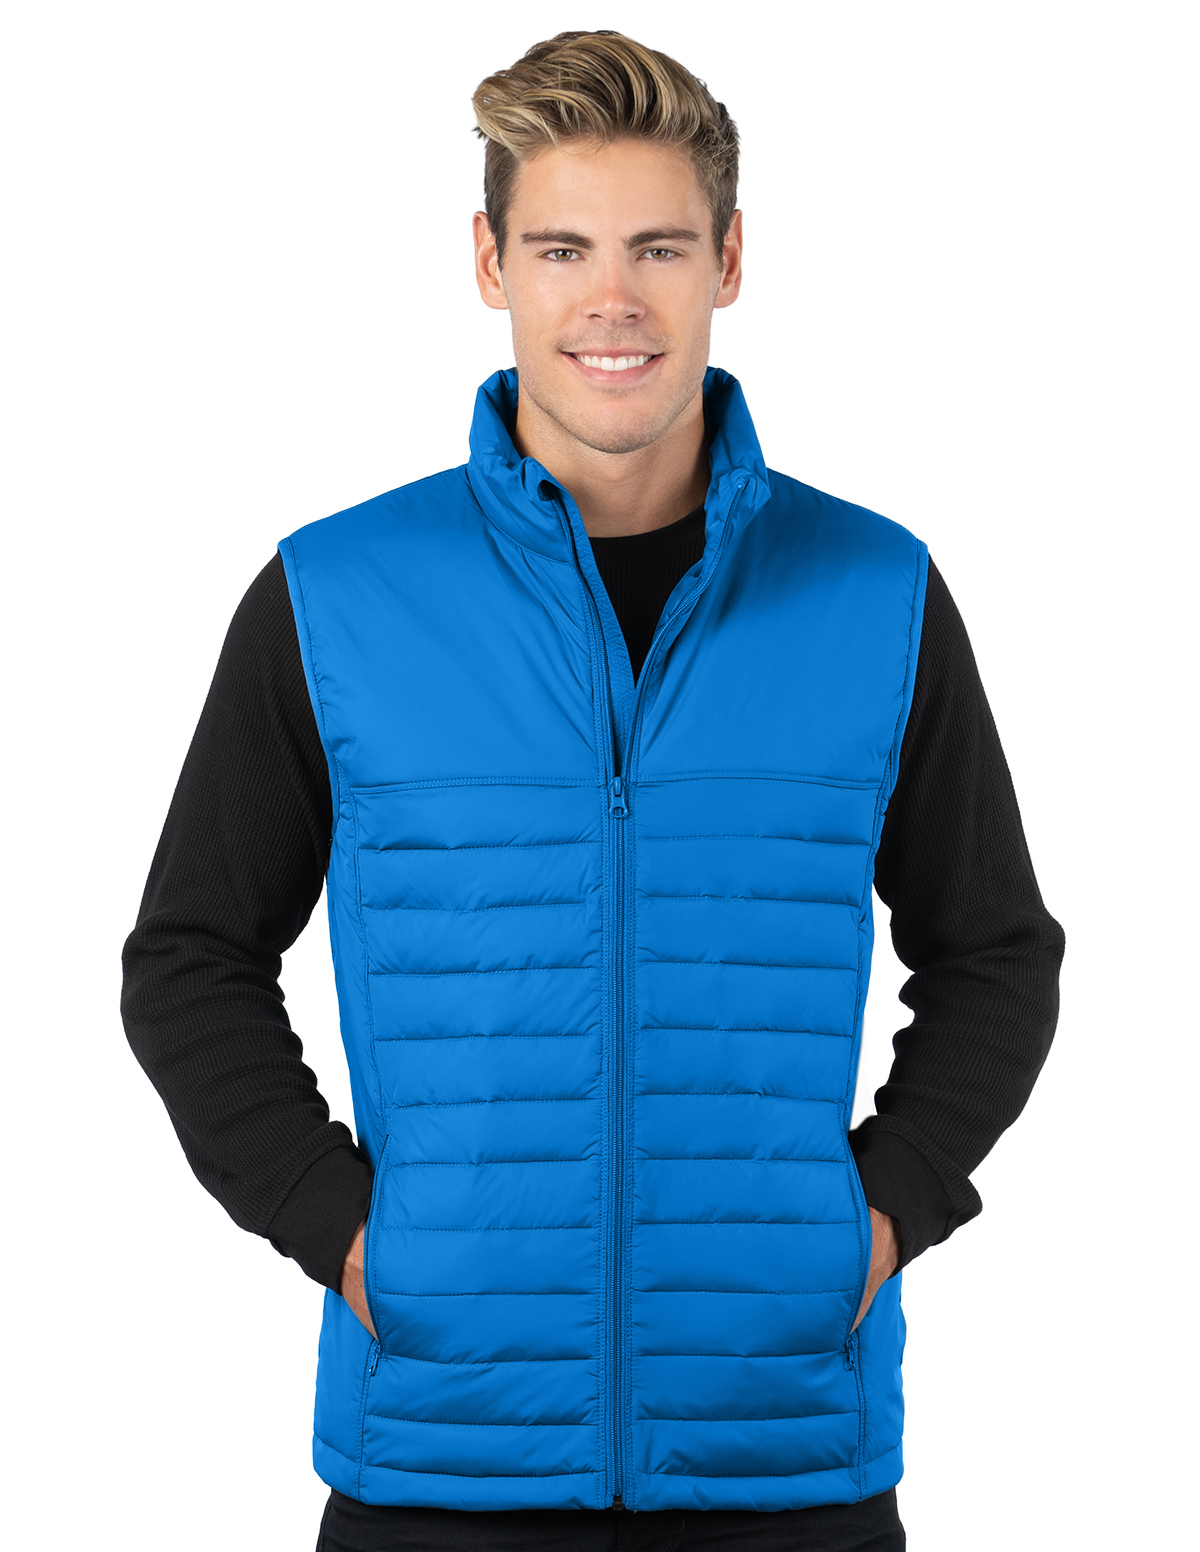 Canby Vest-Mens Quilted Puffer Vest-Tri-Mountain